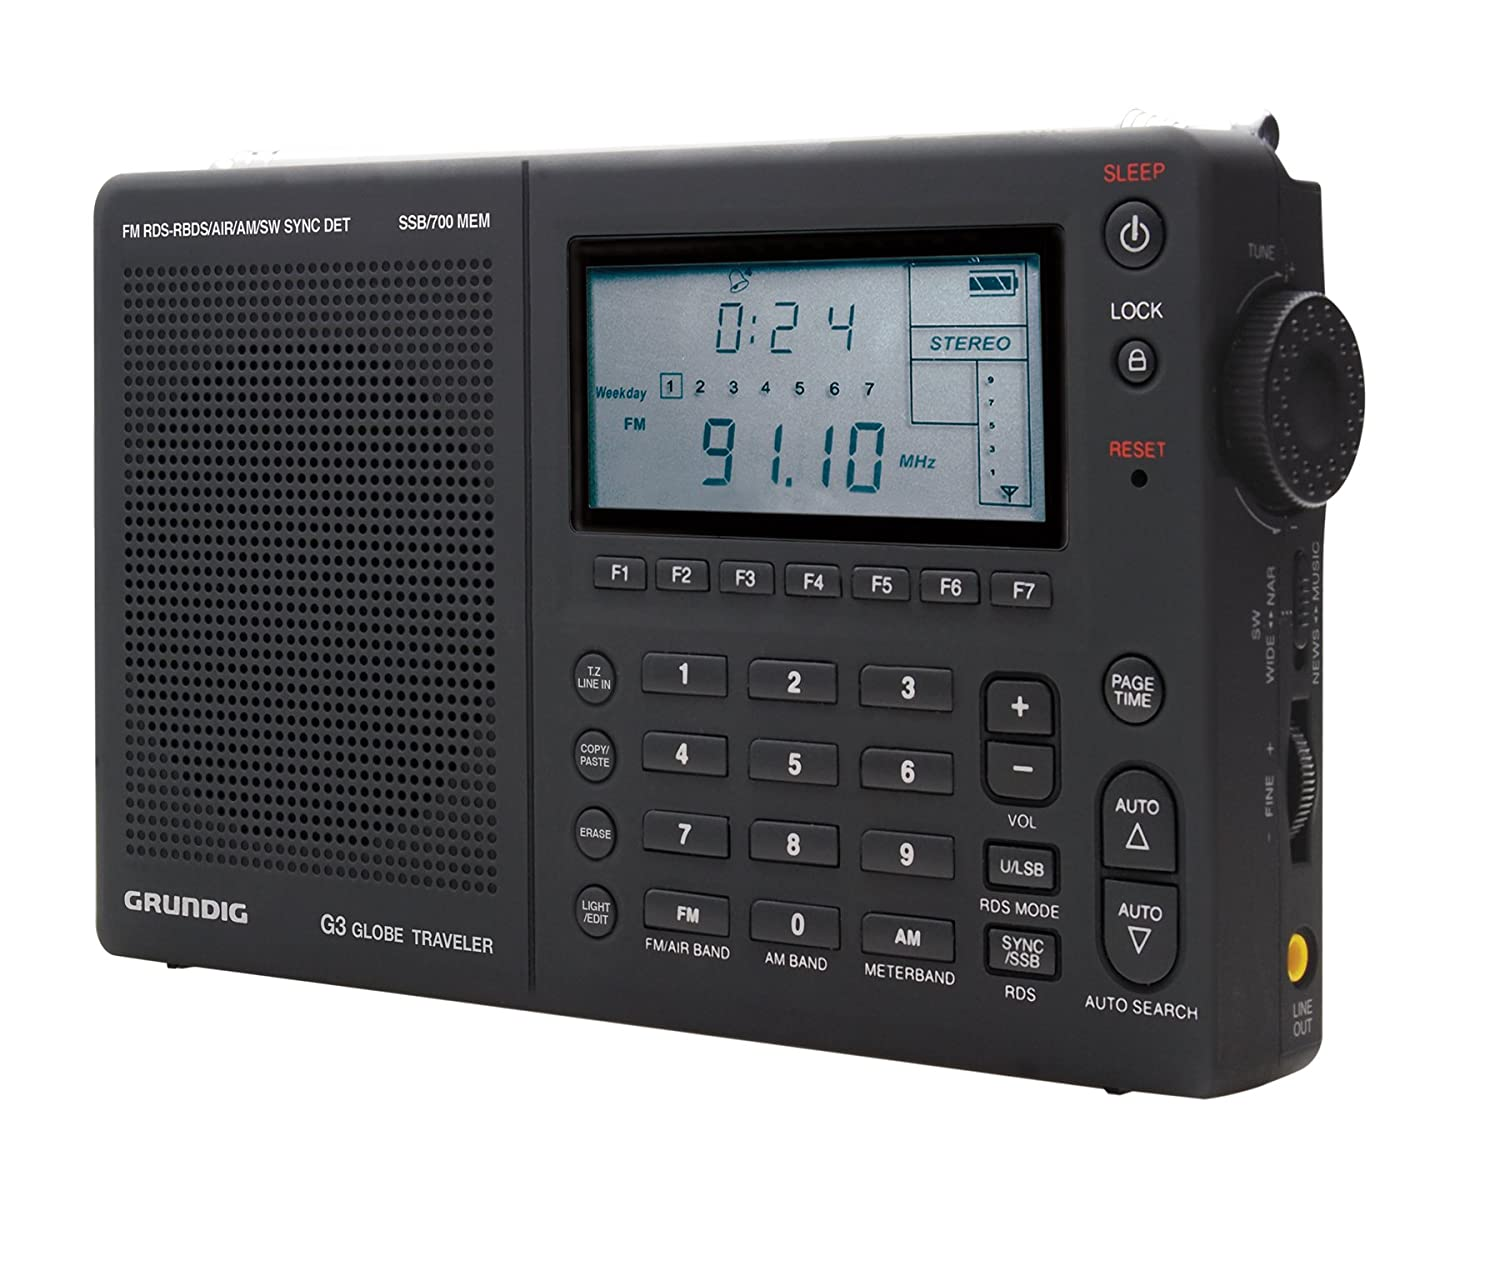 Grundig Globe Traveler G3 Portable AM/FM/Shortwave Radio, Black – ($59.99)